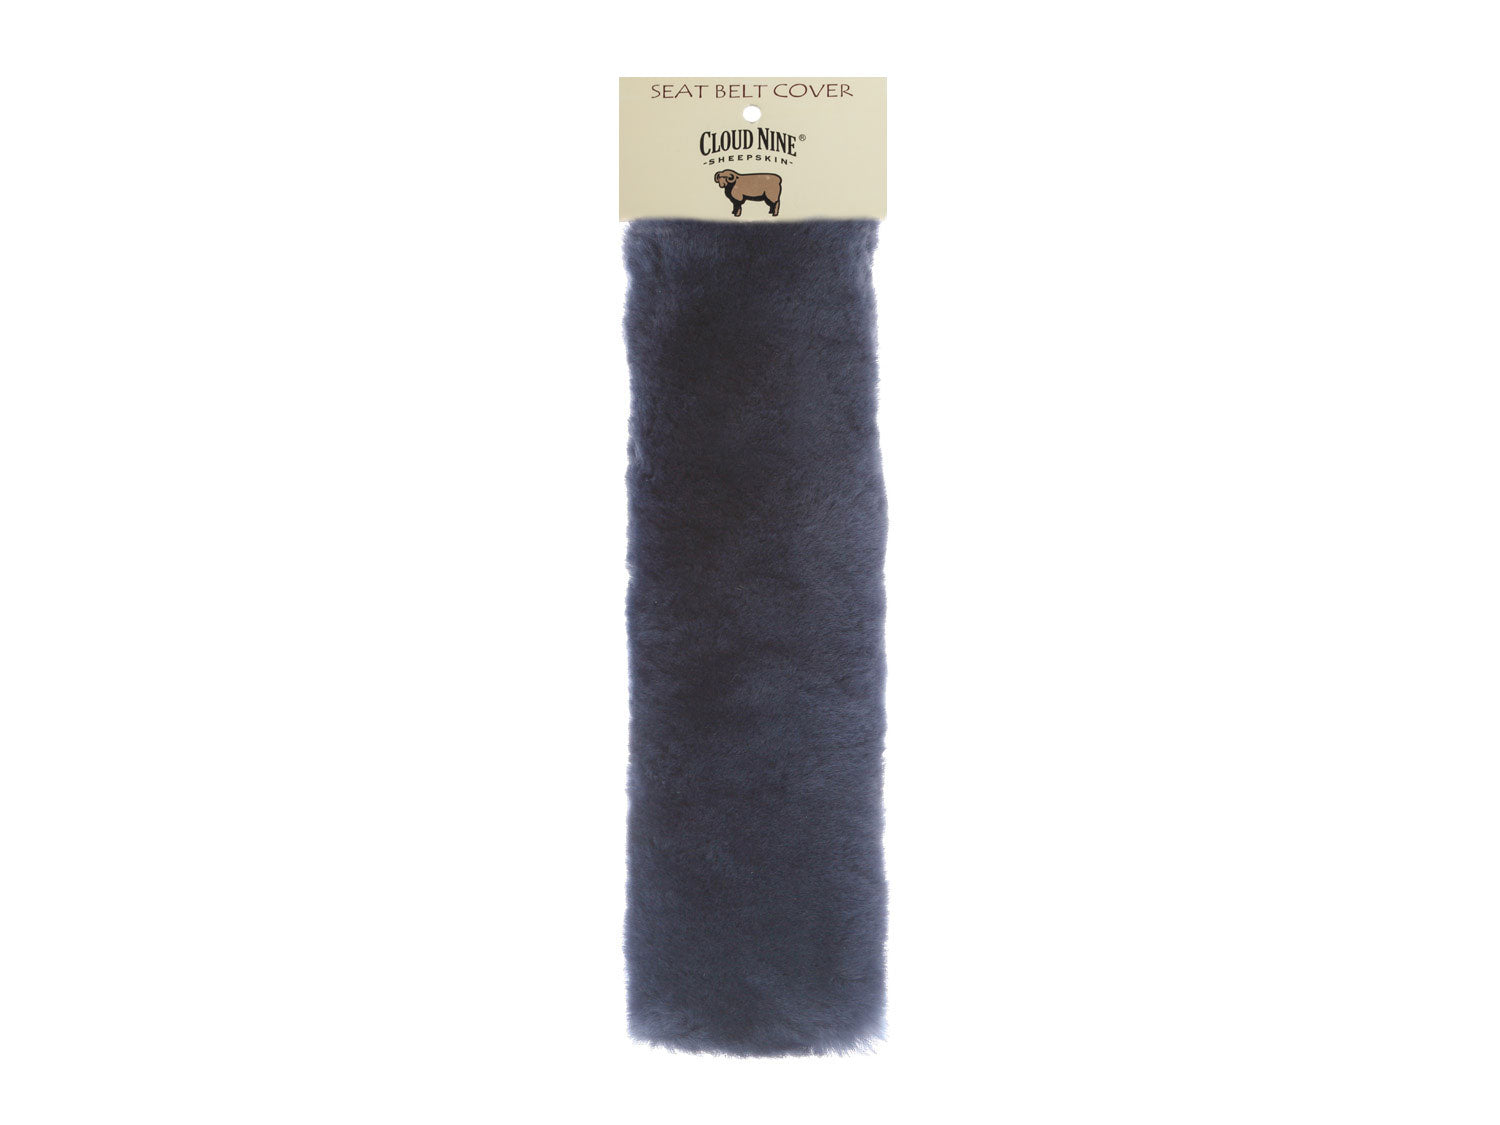 SHEEPSKIN SEAT BELT PROTECTOR - Cloud Nine Sheepskin